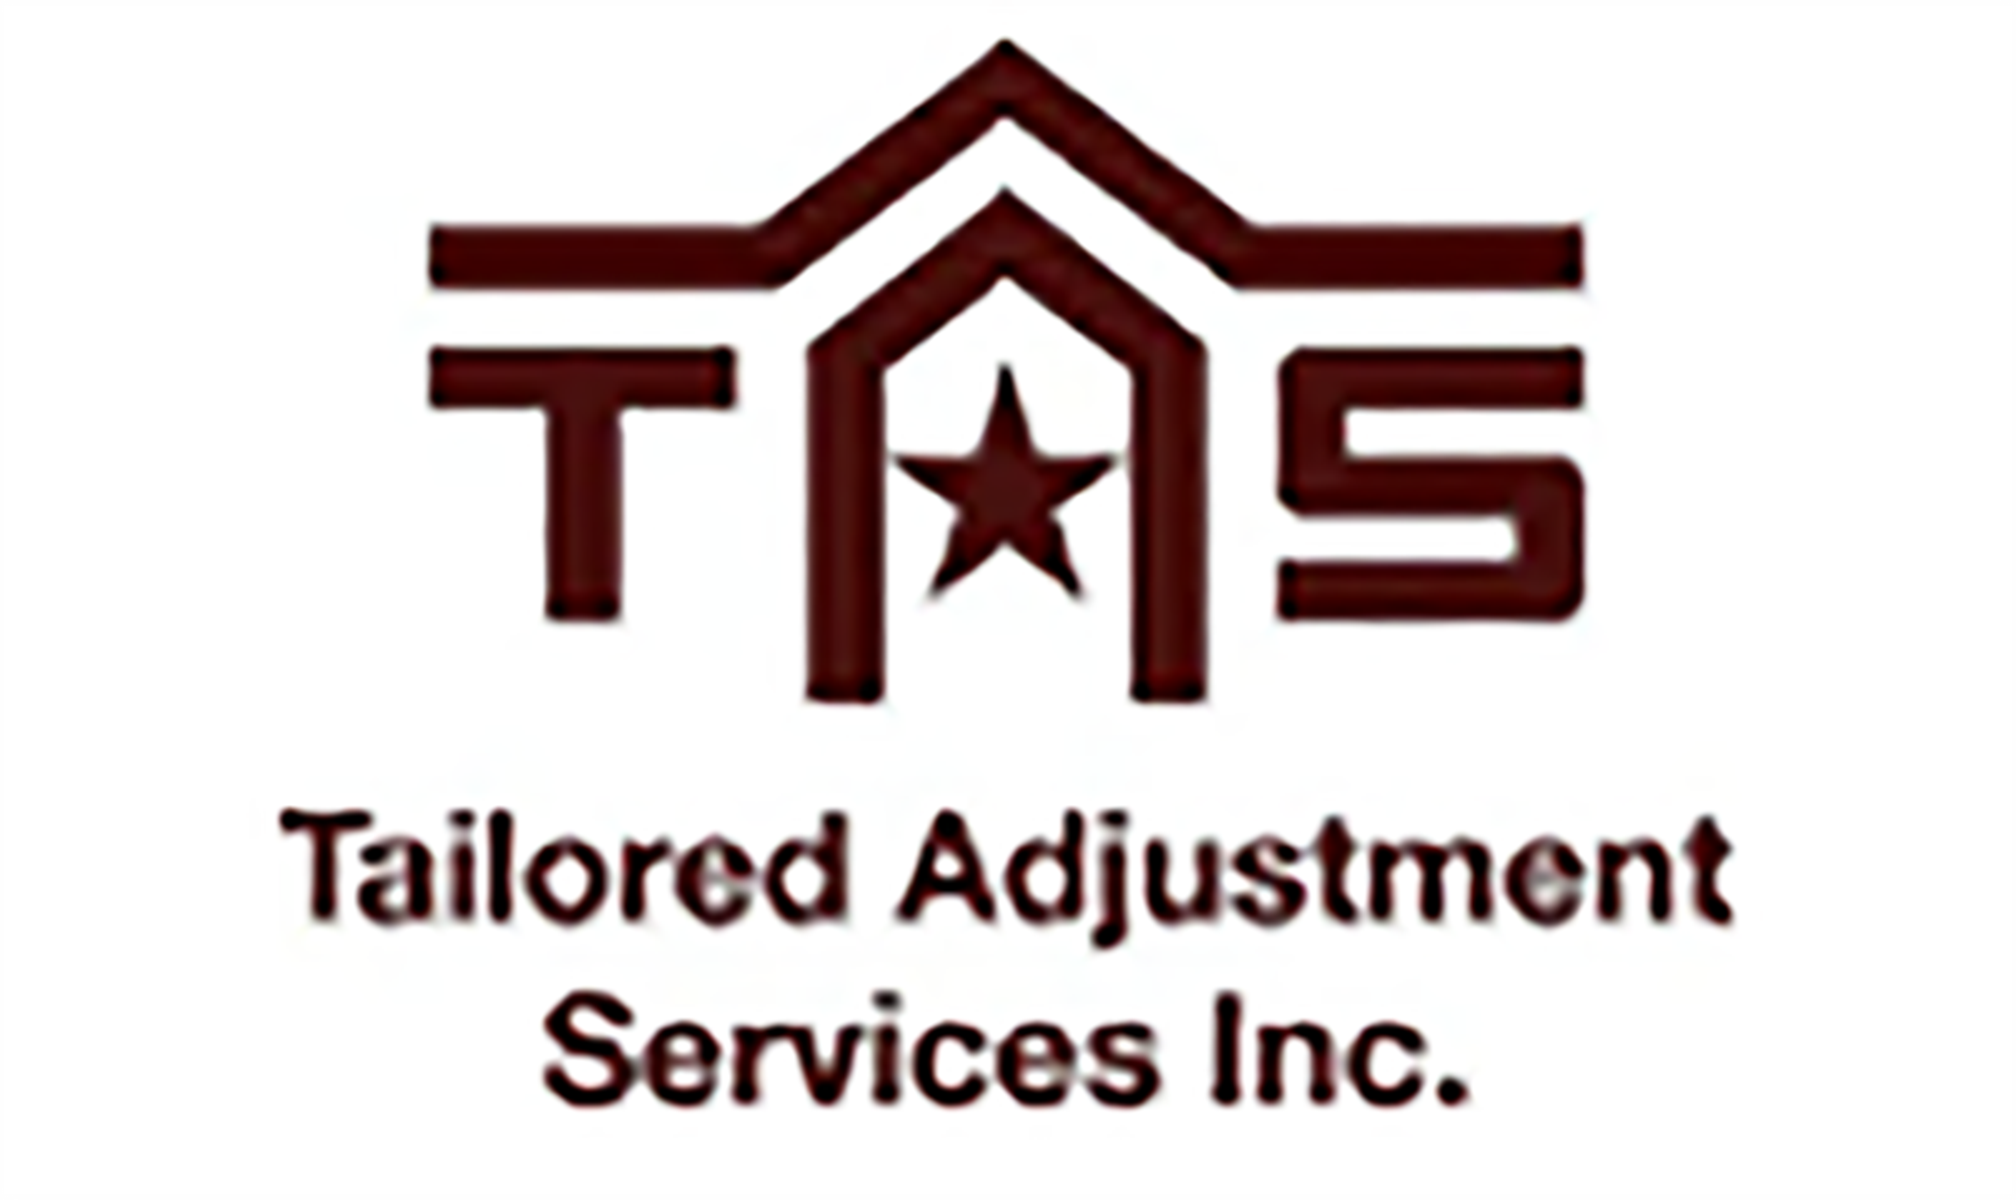 Global Risk Solutions / Tailored Adjustment Services